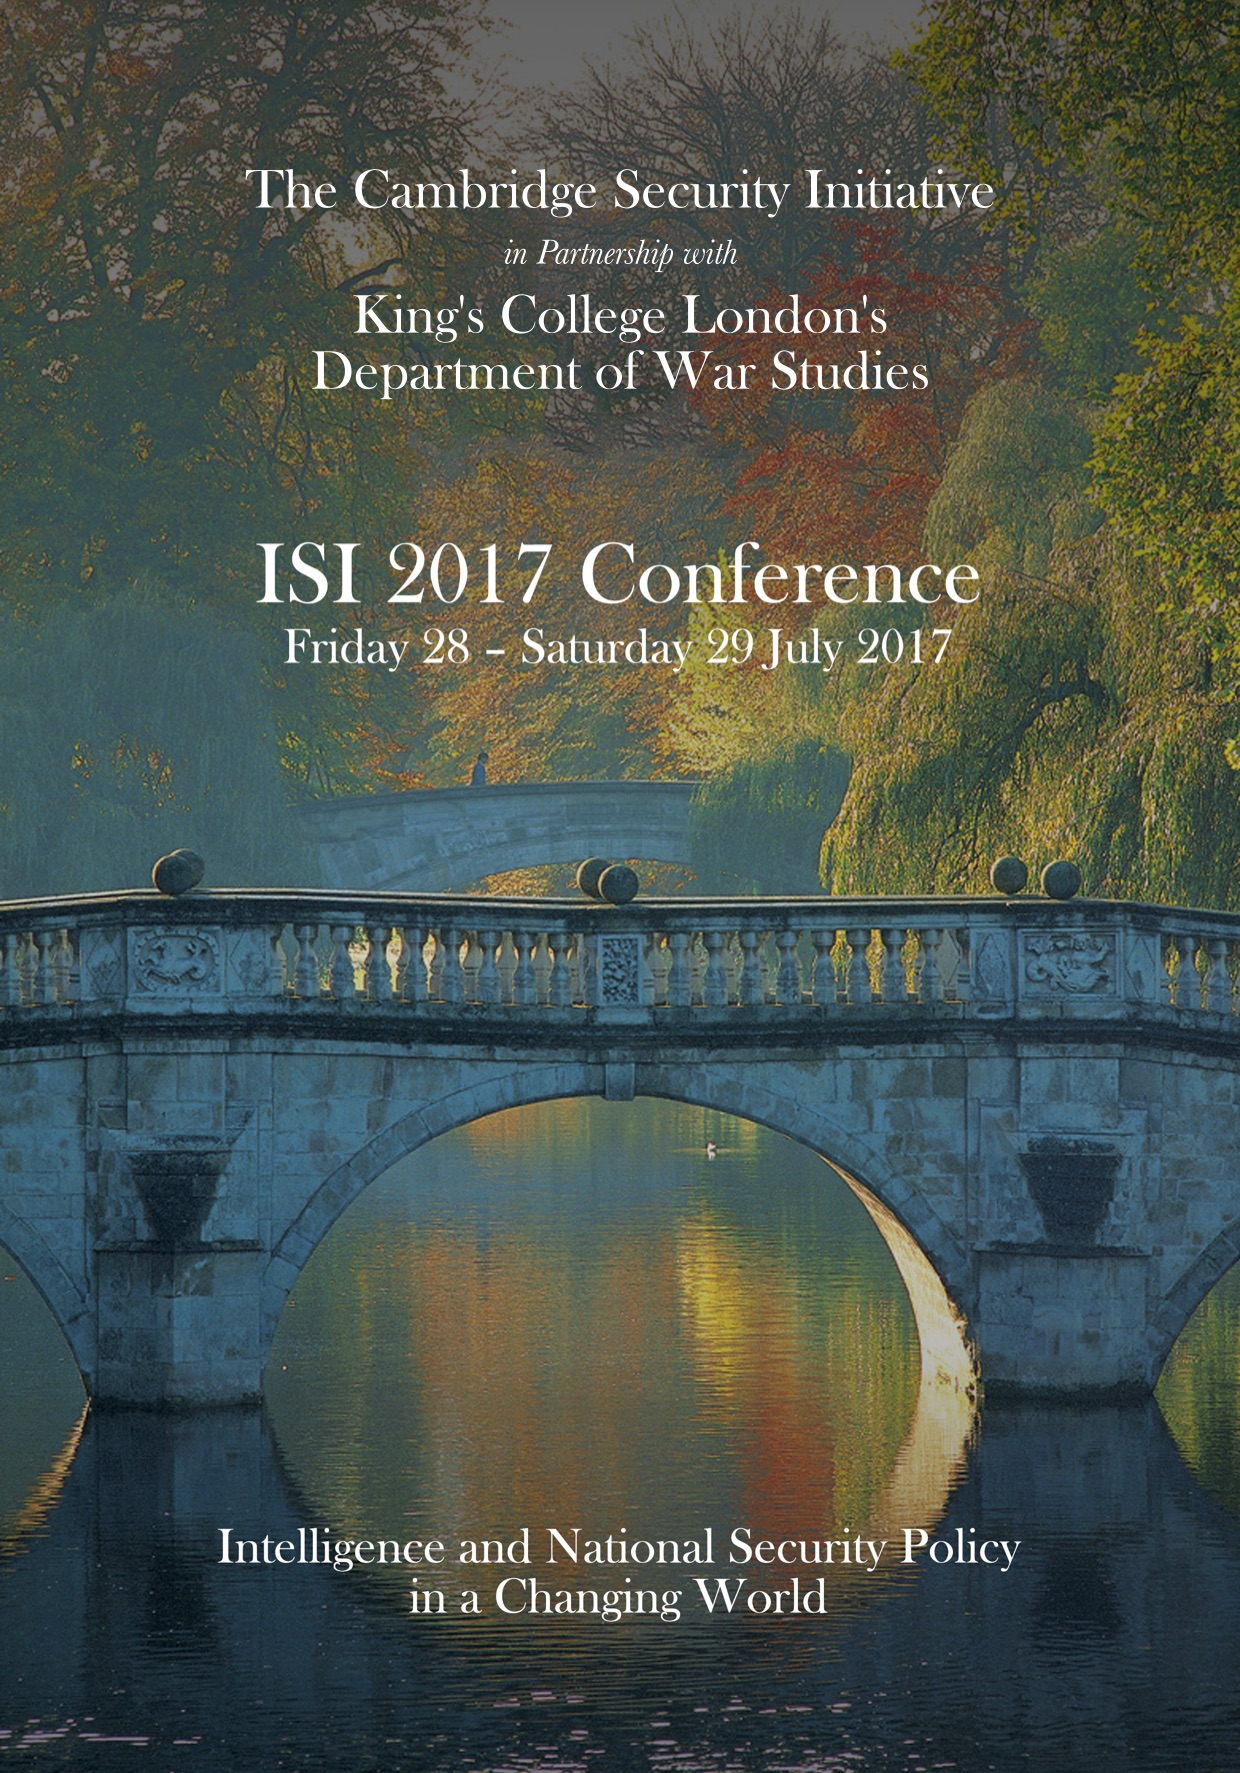 isi 2017 1